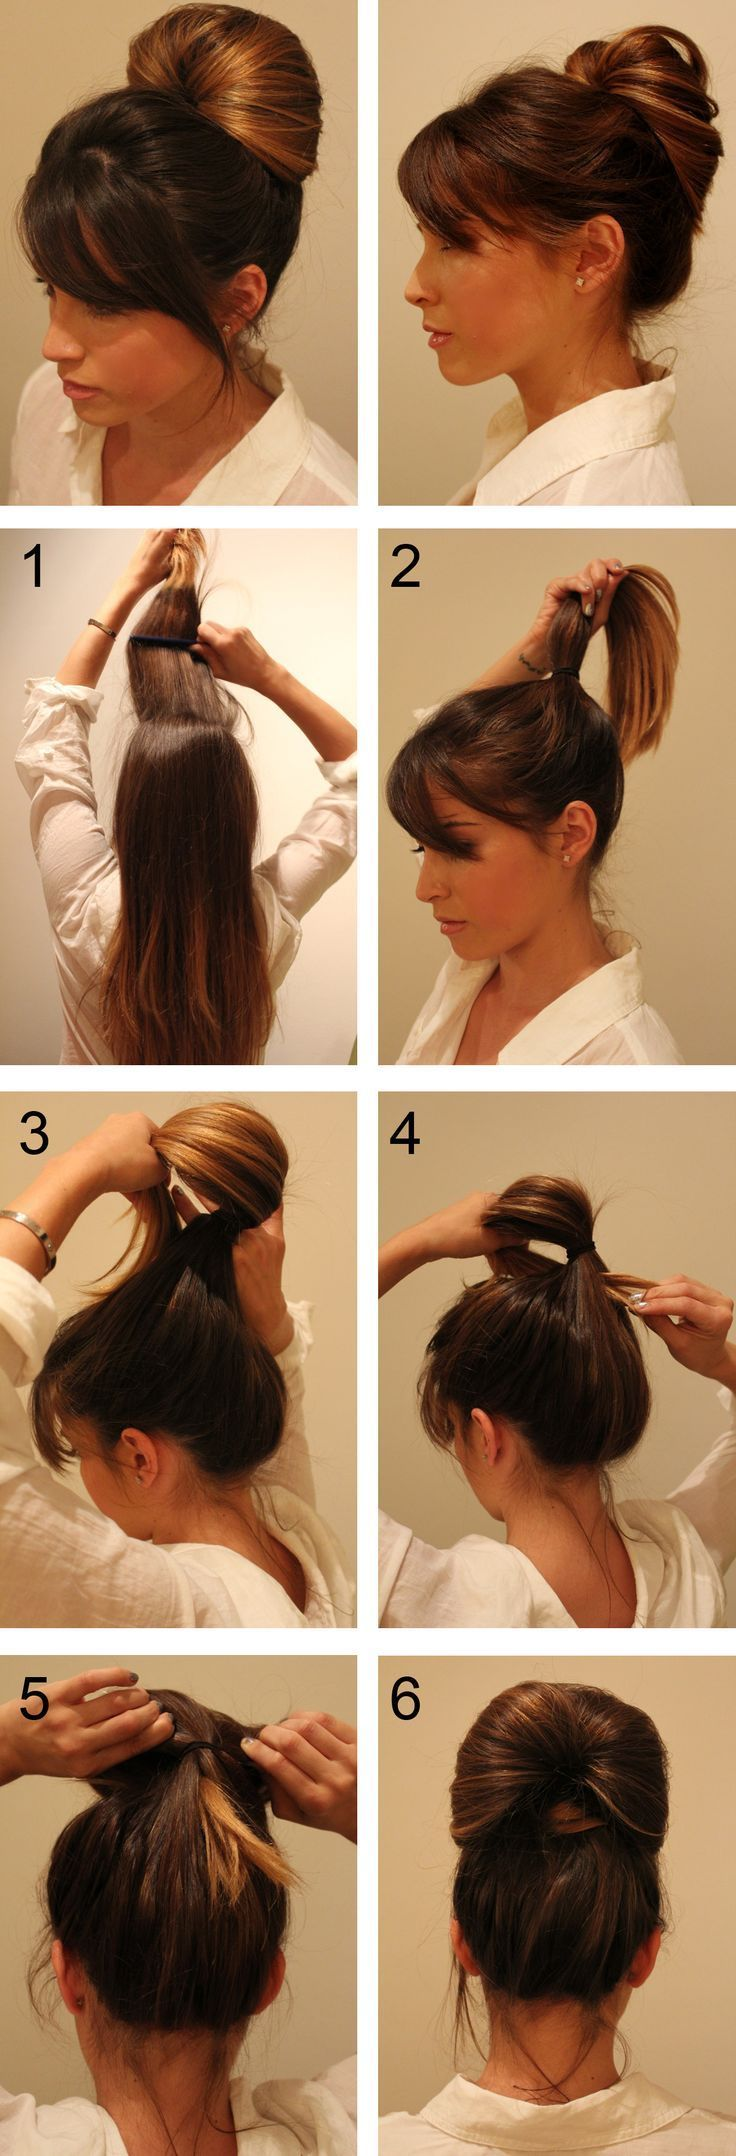 Inside out pony tail technique hair long hair updo braids diy hair diy bun hairstyles wedding hairstyles hair tutorials wedding hair easy hairstyles